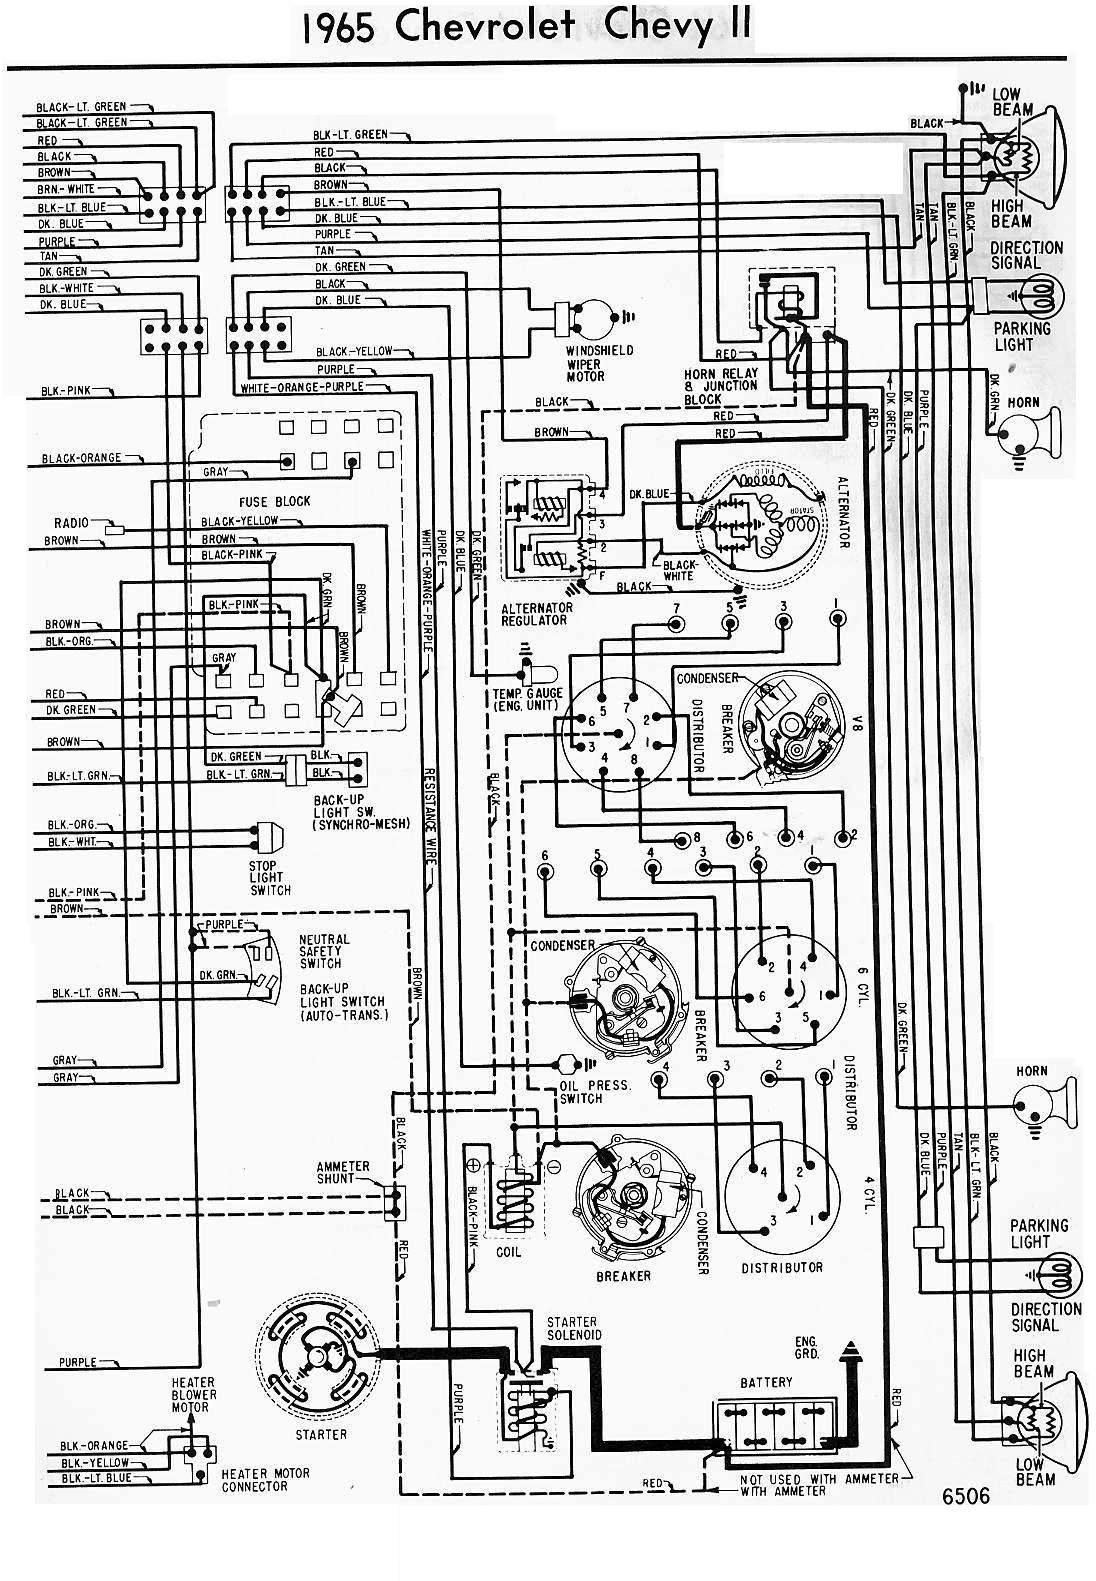 1965 chevy wiring diagram GwtSdvU diagrams chevy starter wiring diagram chevy starter wiring 1965 chevy nova wiring diagram at webbmarketing.co